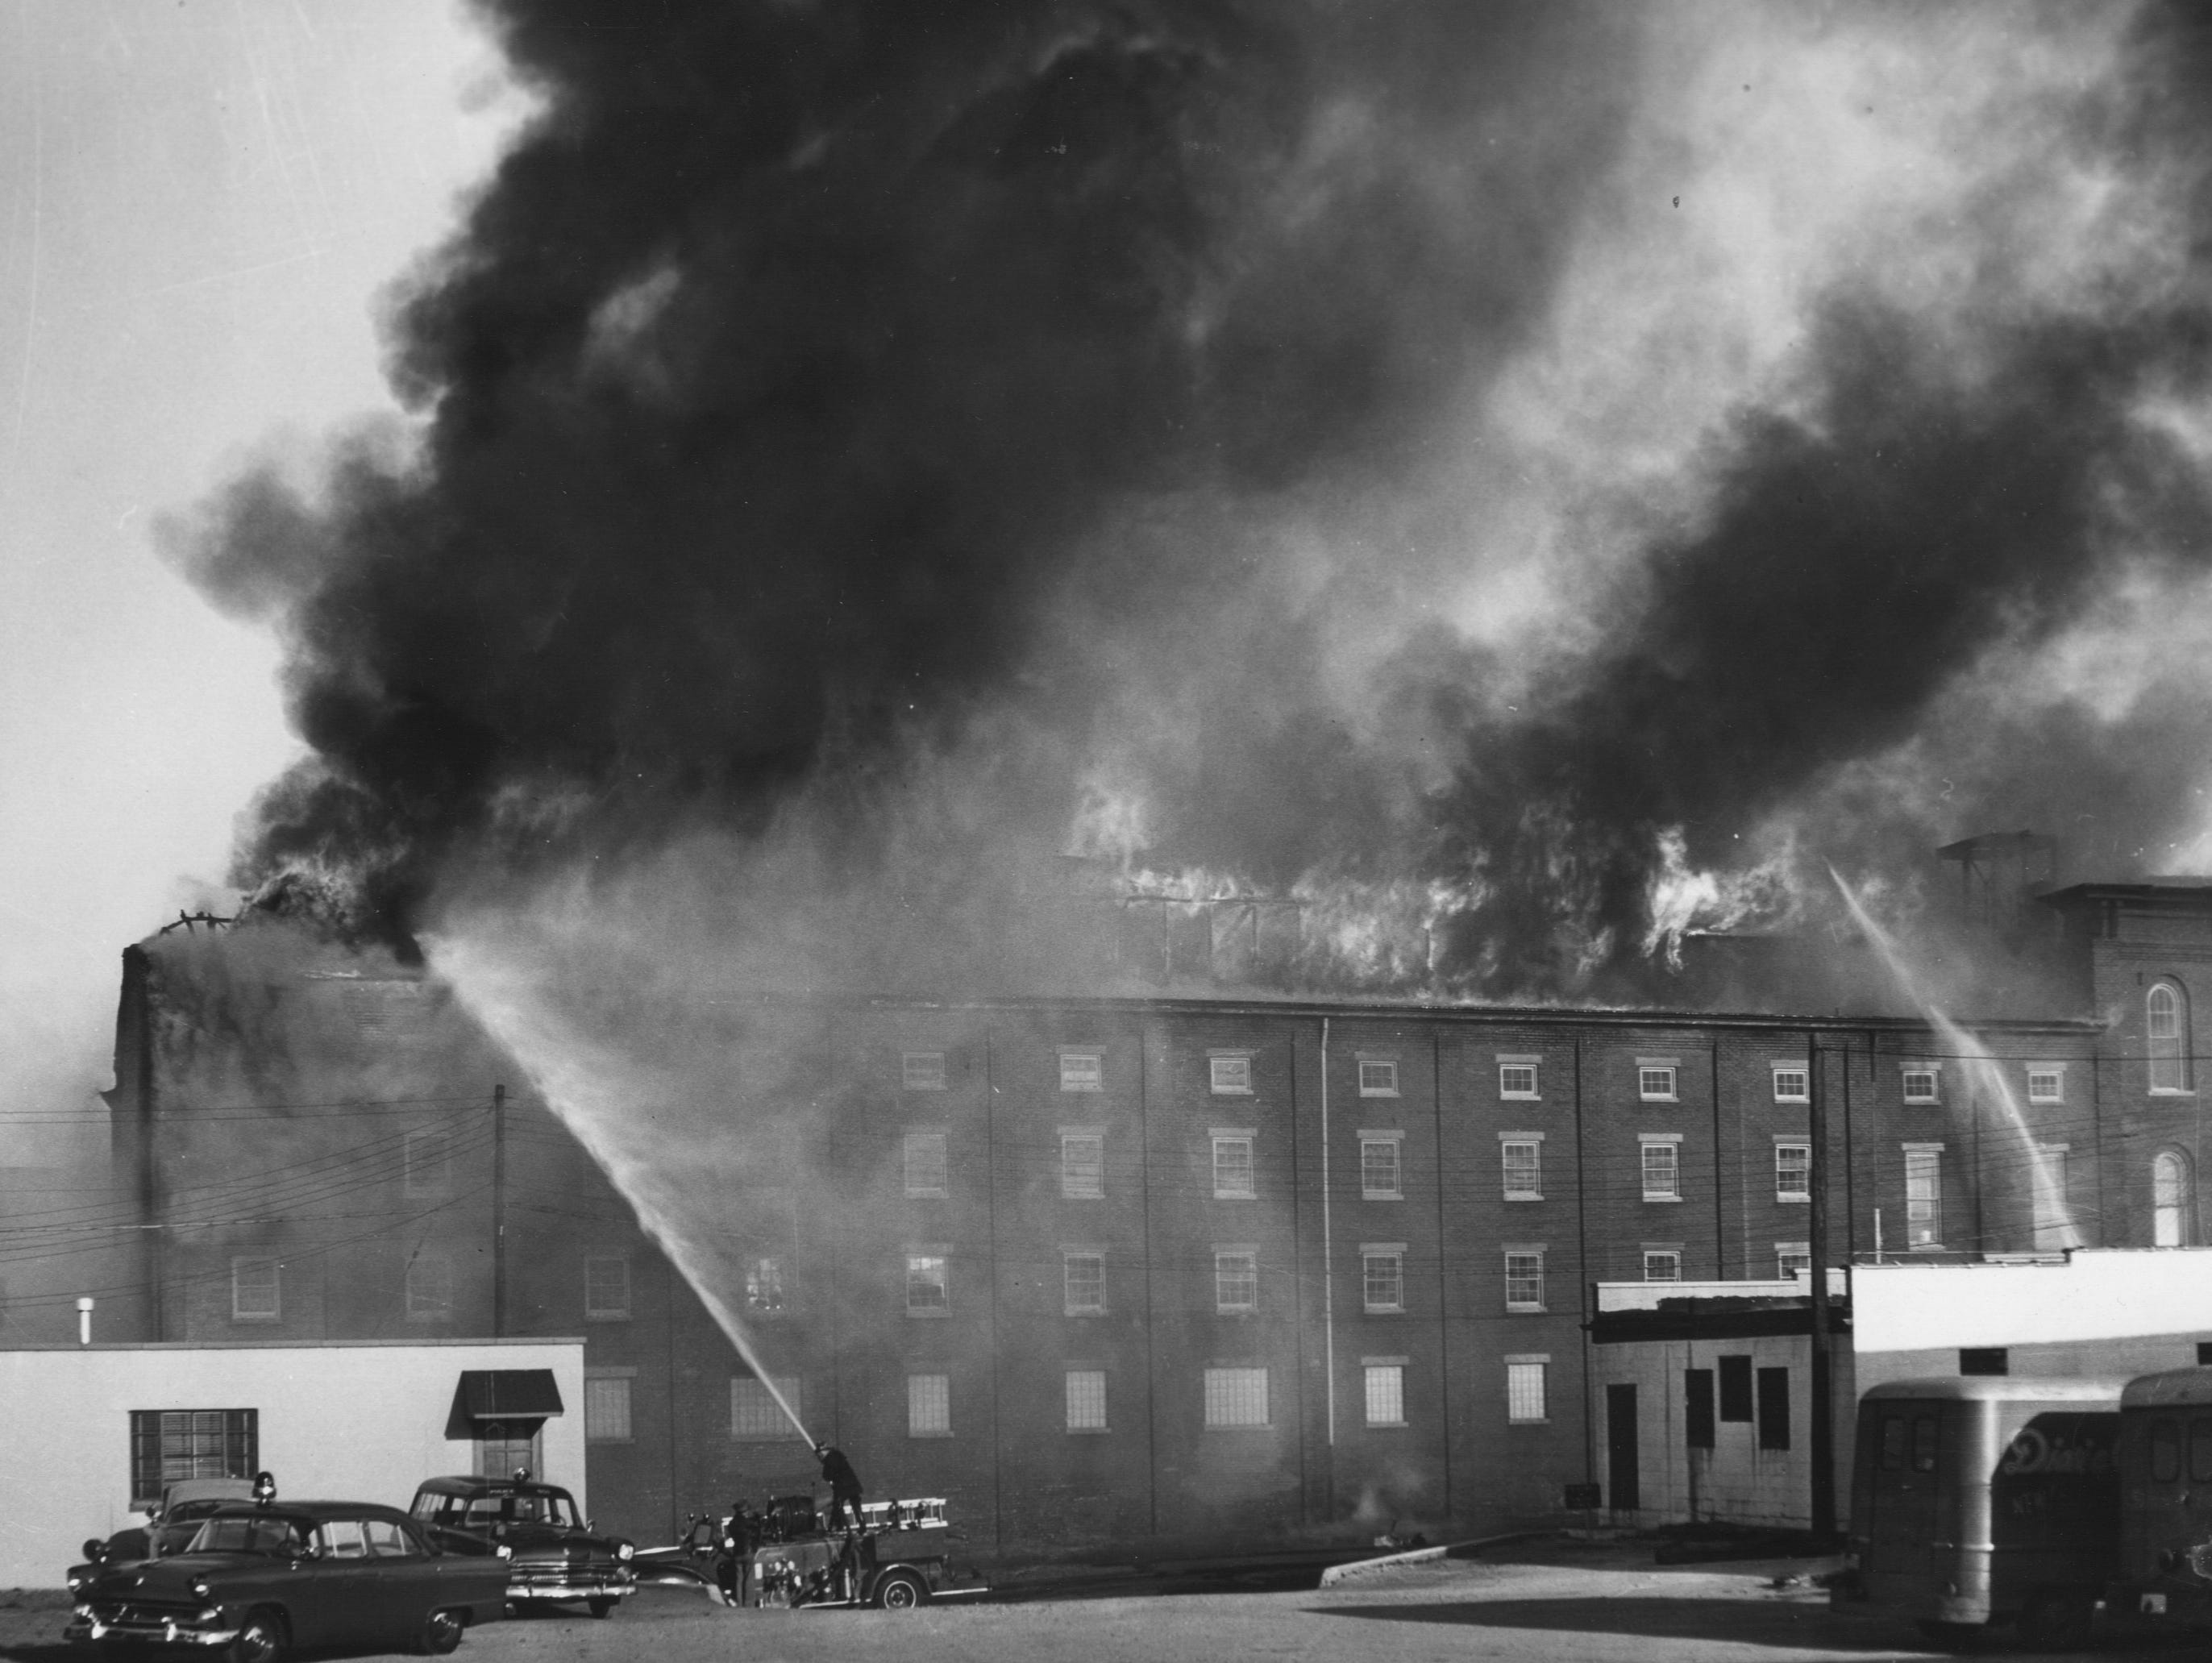 A four-alarm fire at Dixie Cartage located at 11th and Main. 